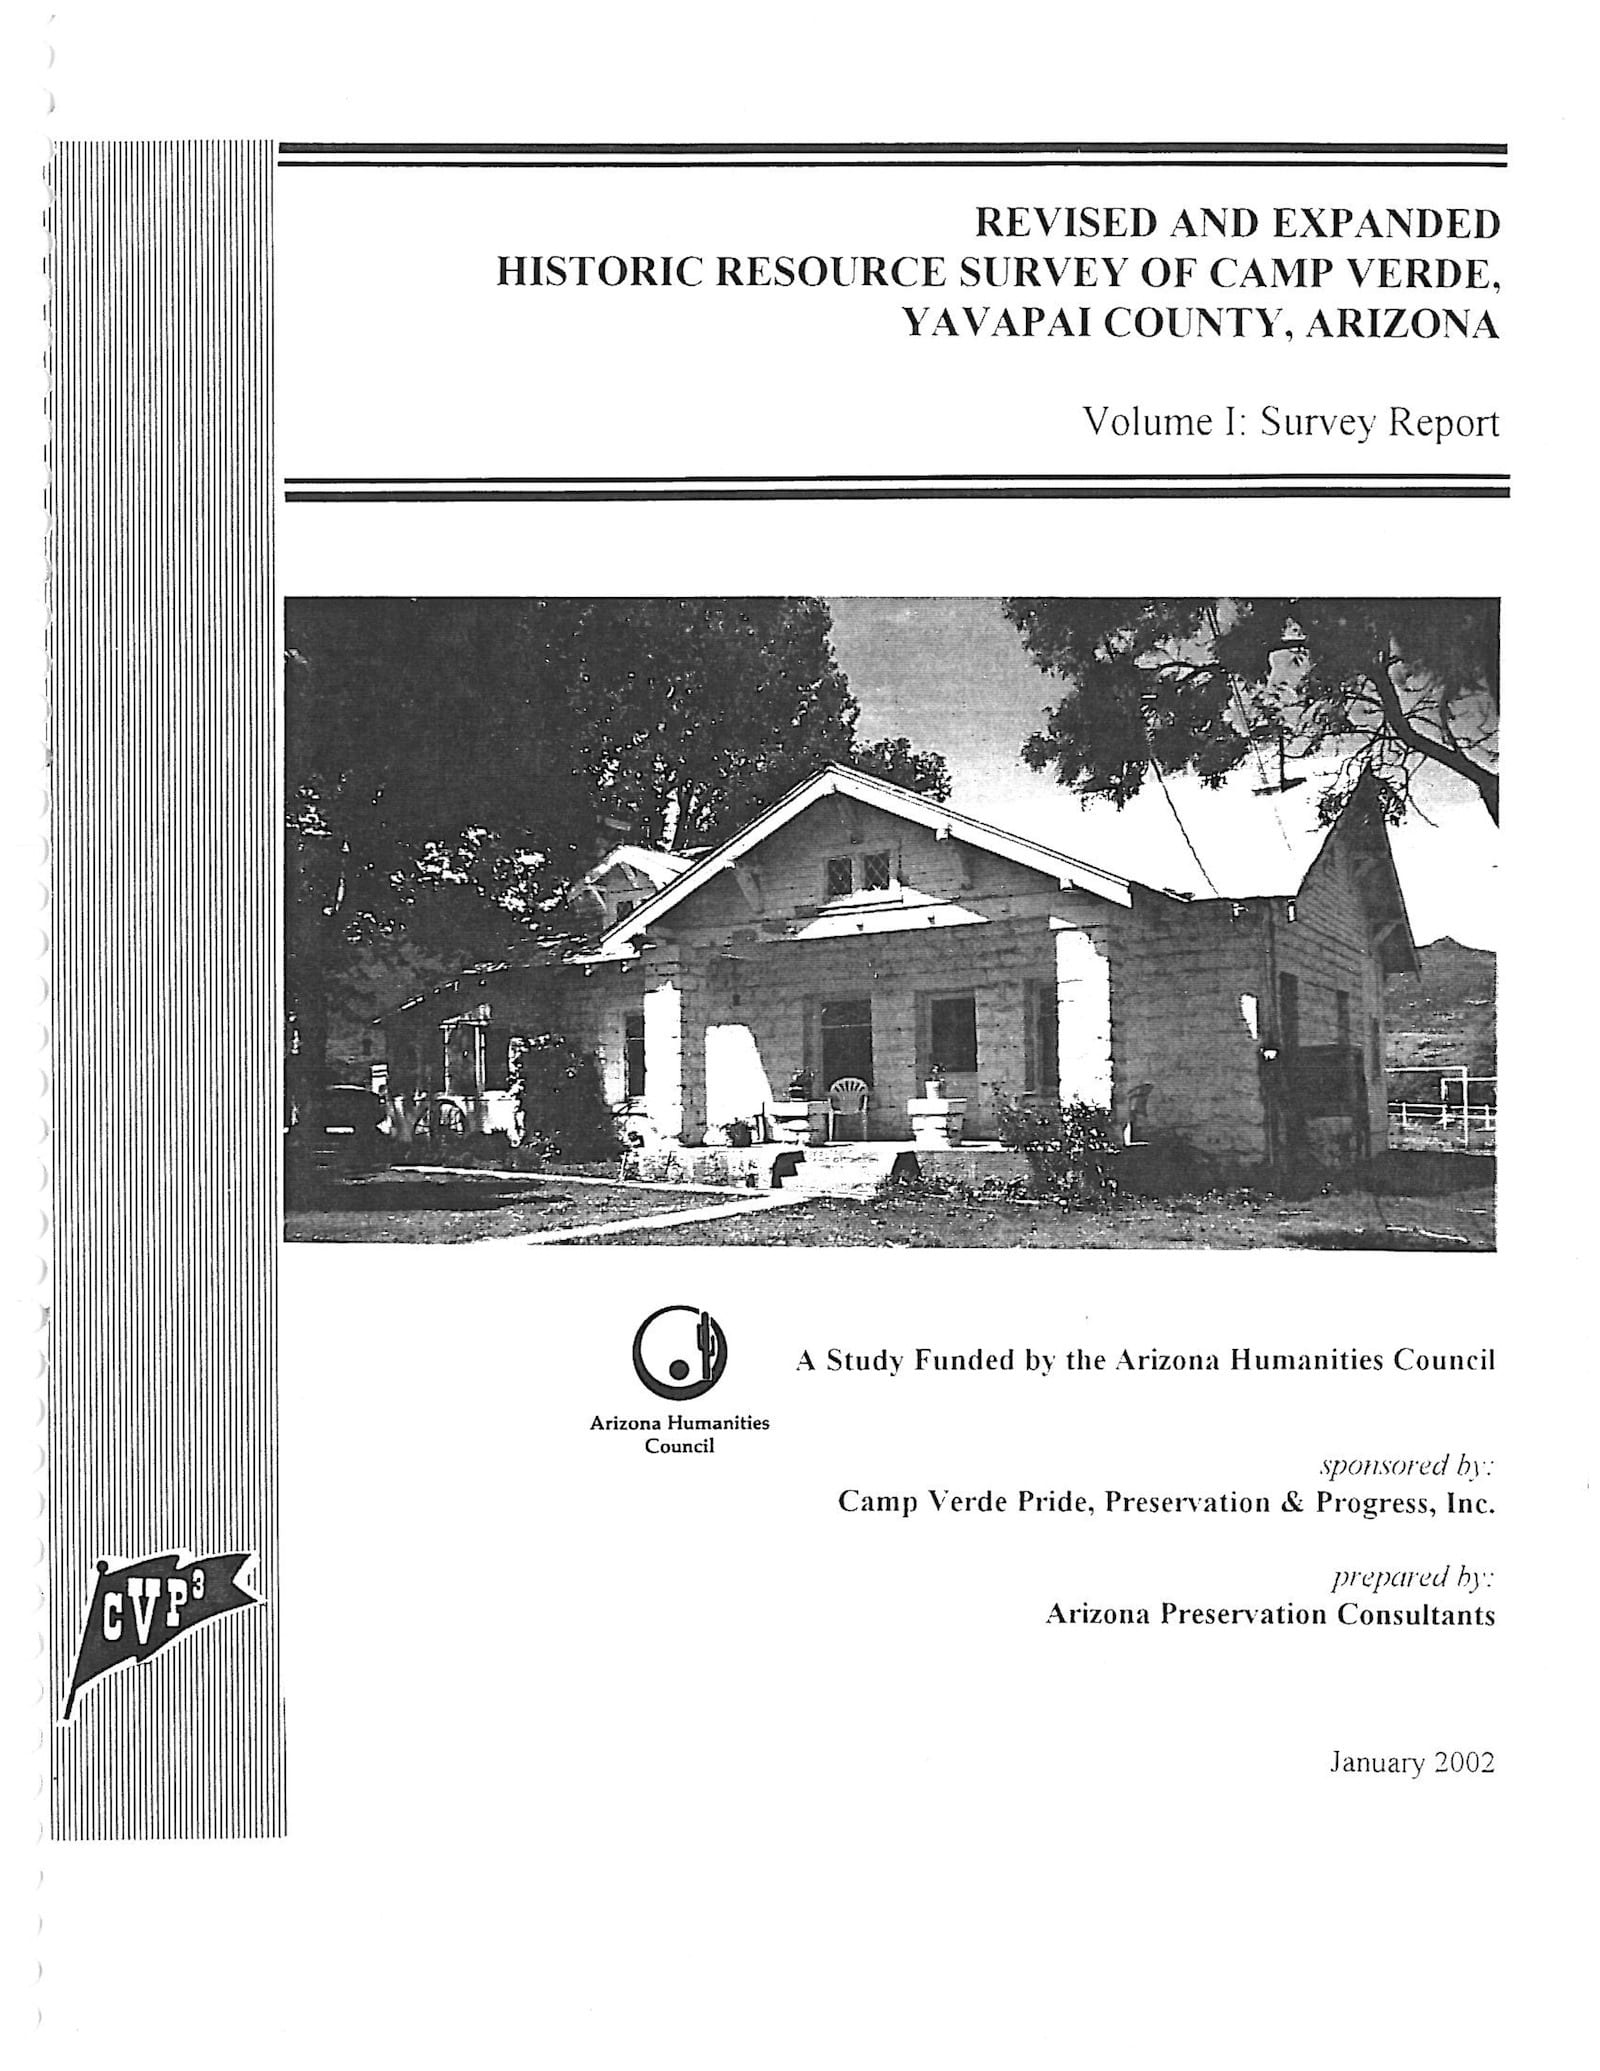 Historic Resource Survey of Camp Verde